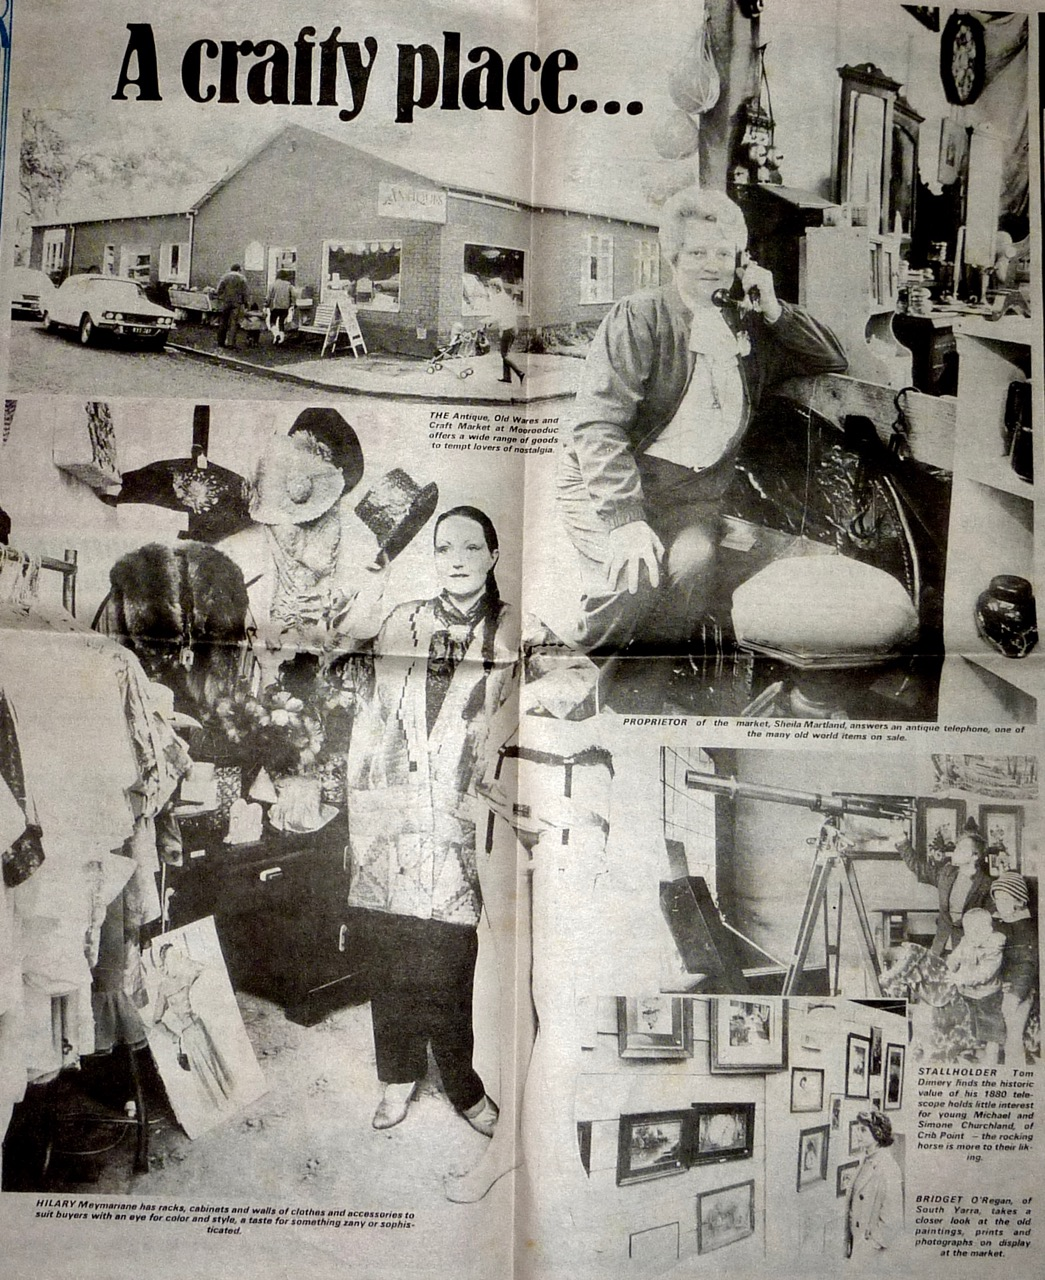 A crafty place Frankston-Mornington News, Tuesday 18 October 1983 - pg.14.jpg